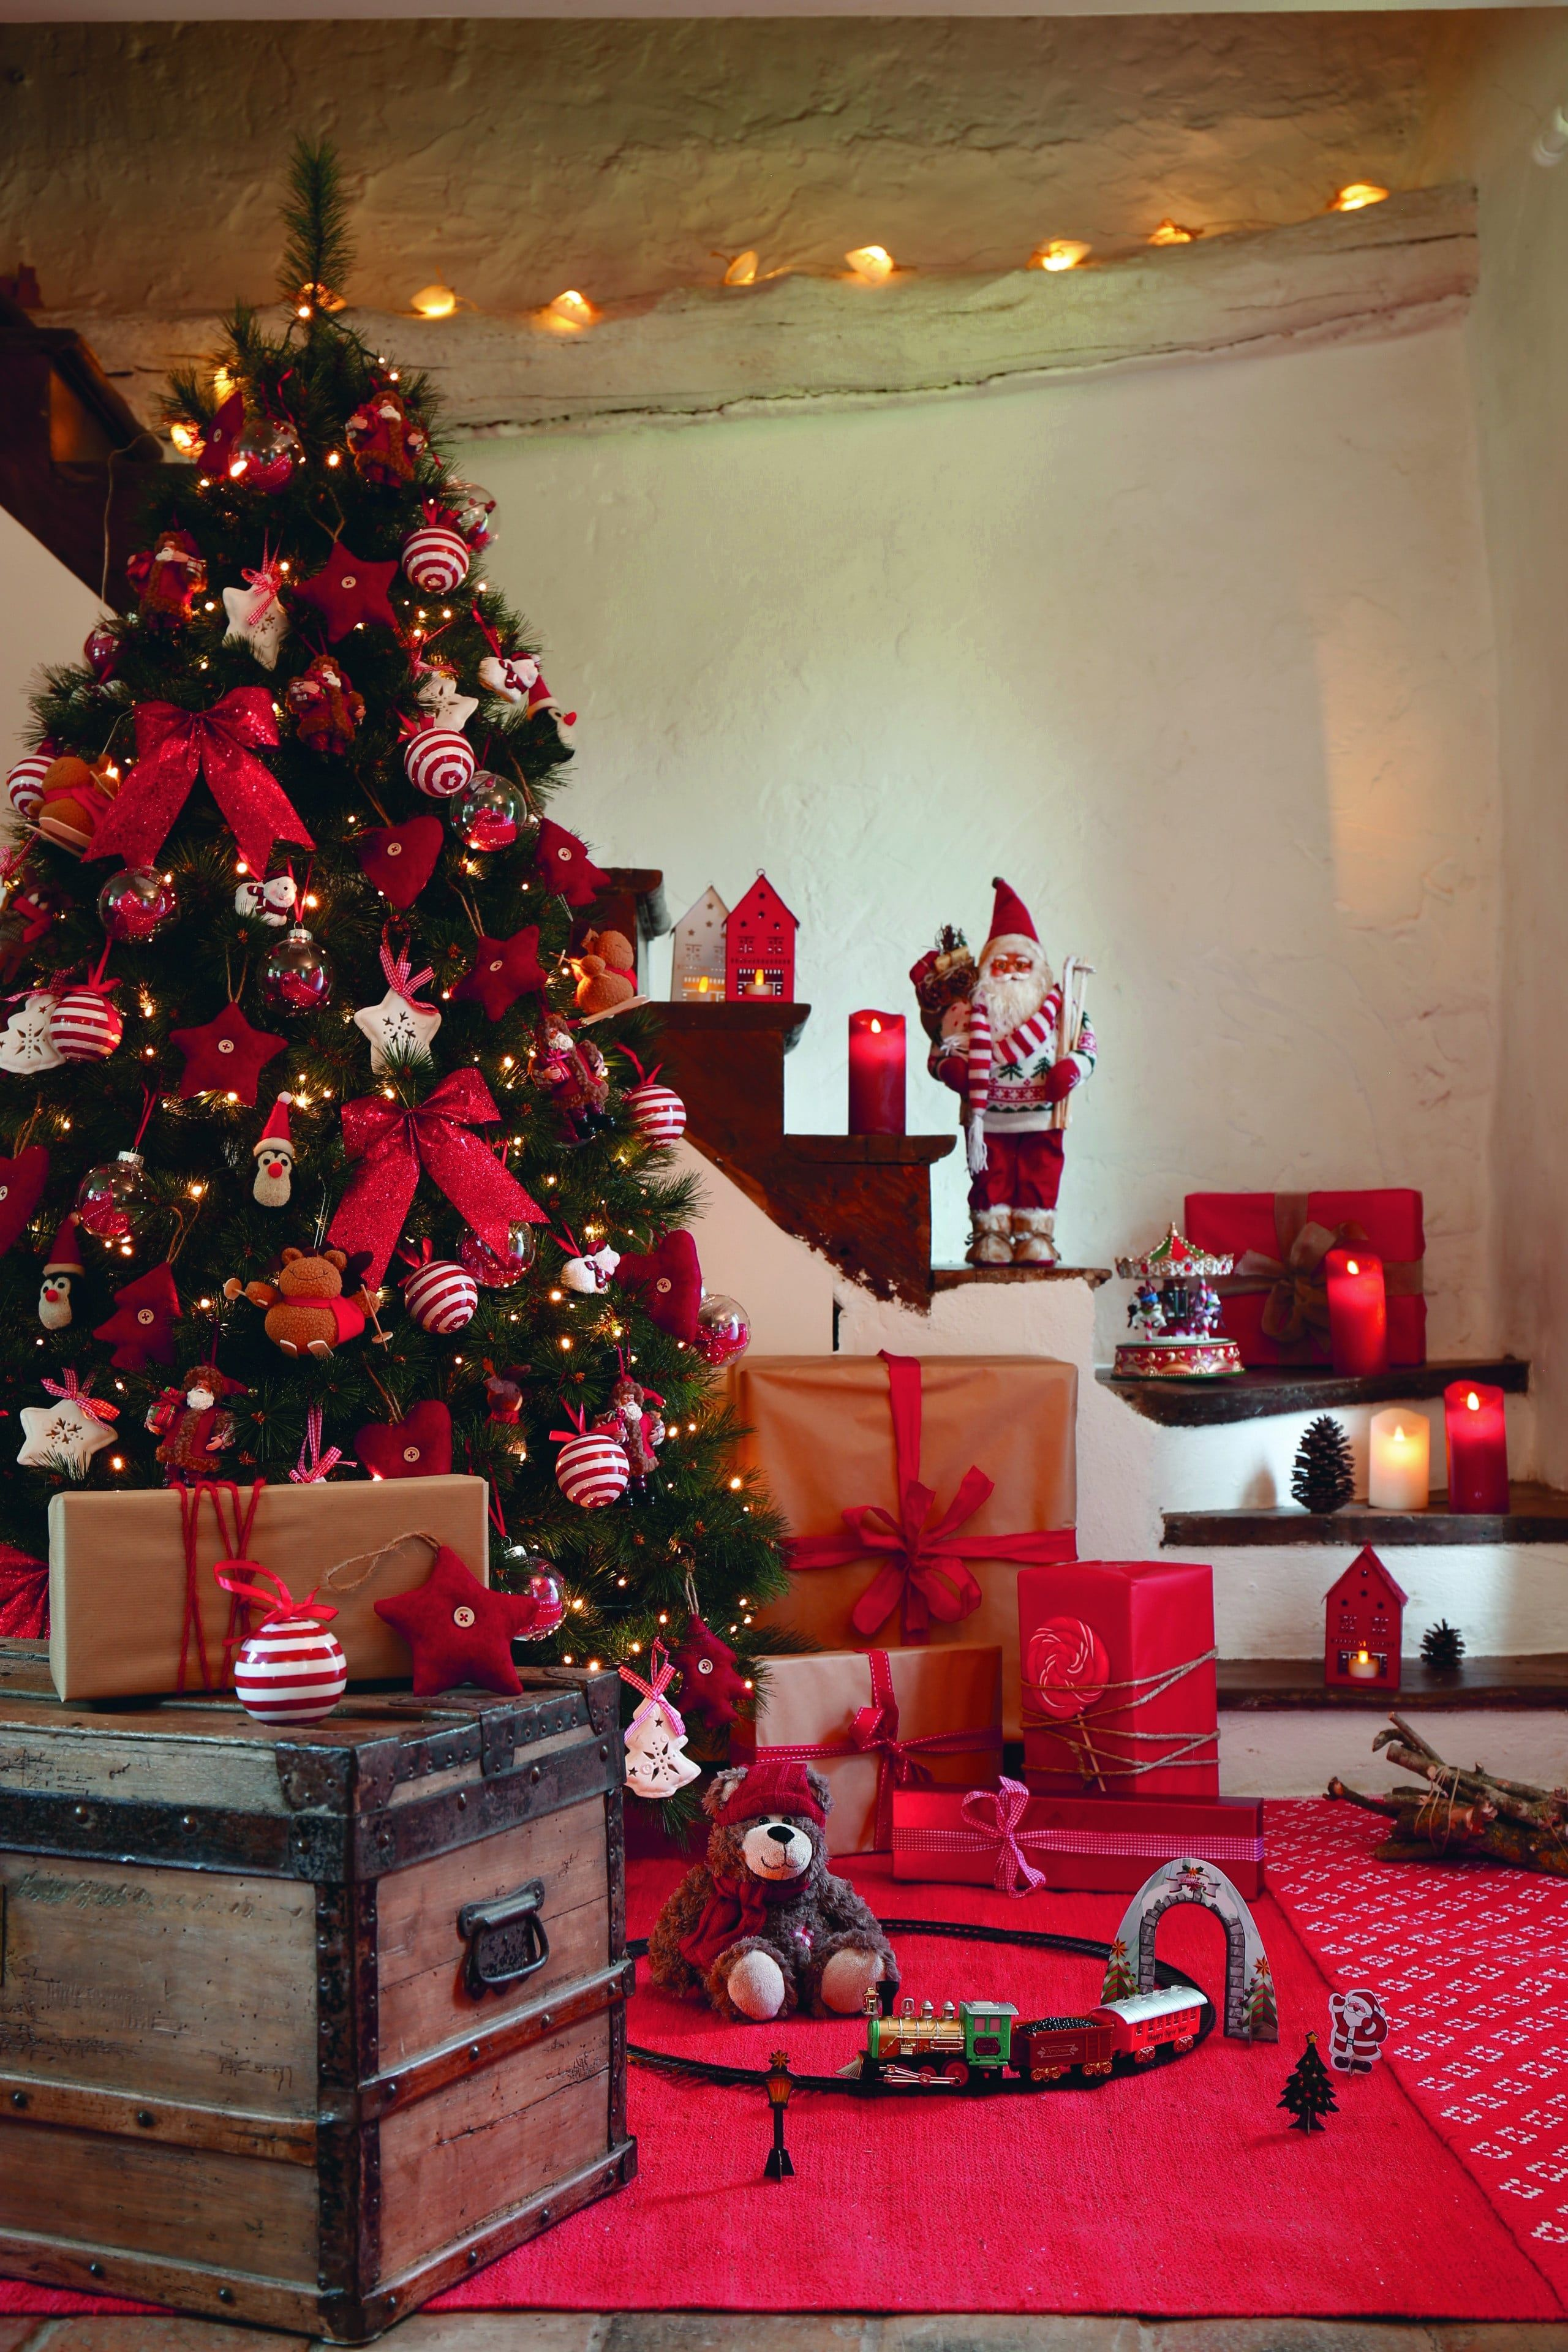 Deco Sapin De Noel Rouge Et Or Le Traditionnel Sapin Rouge Et Blanc Anything About Christmas